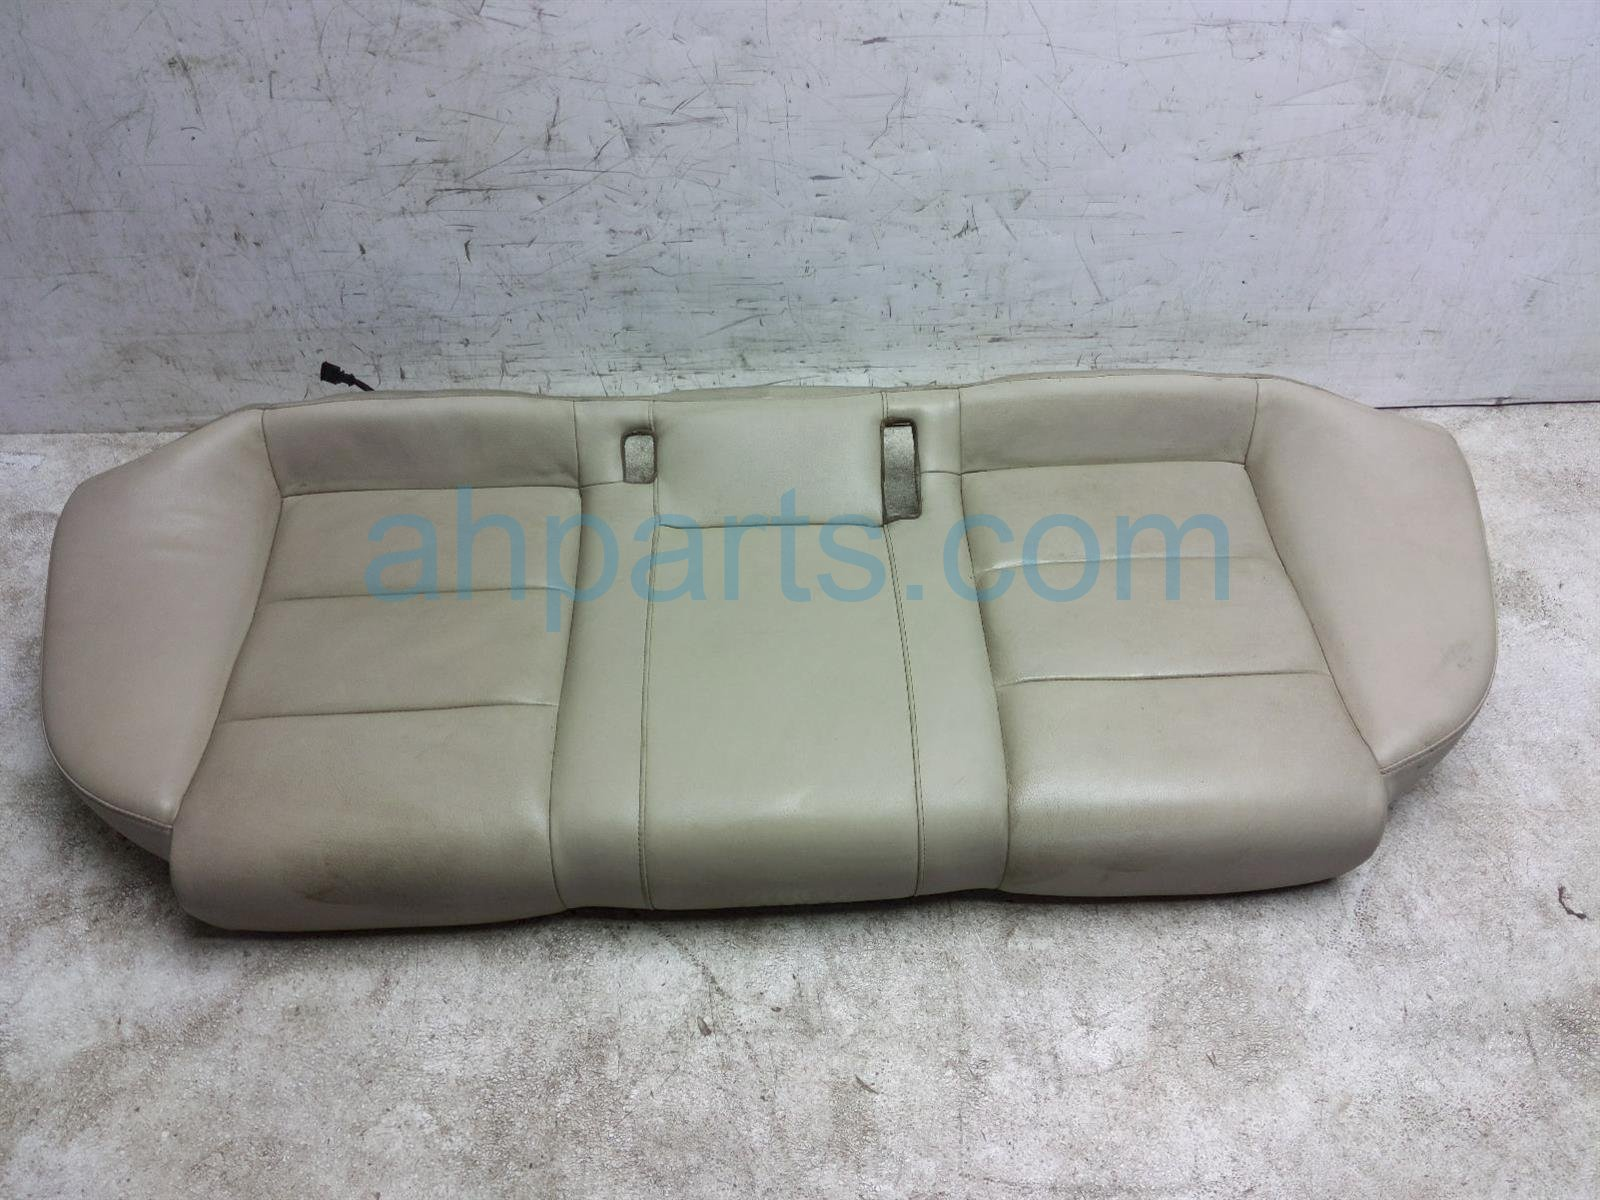 2011 Audi A6 Audi Back (2nd Row) Rear Seat Bottom Cushion   Tan Leath 4F0 885 405 BC VTS Replacement